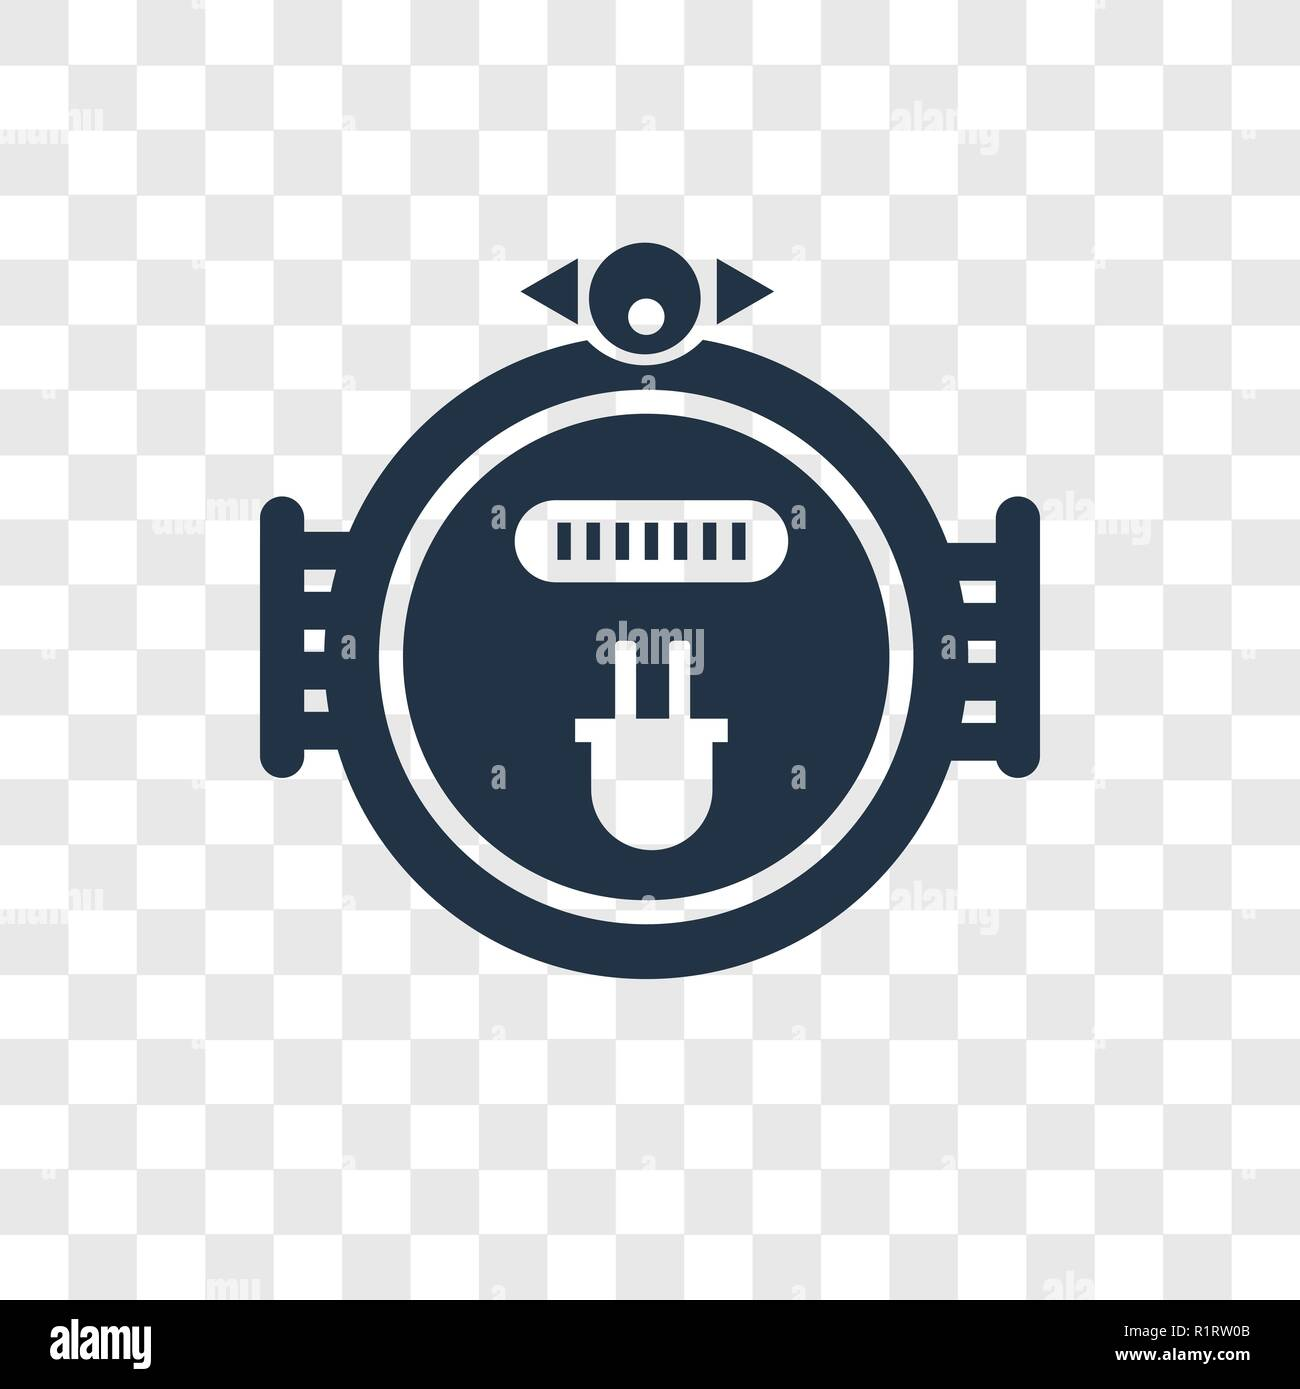 Meter vector icon isolated on transparent background, Meter transparency logo concept - Stock Image